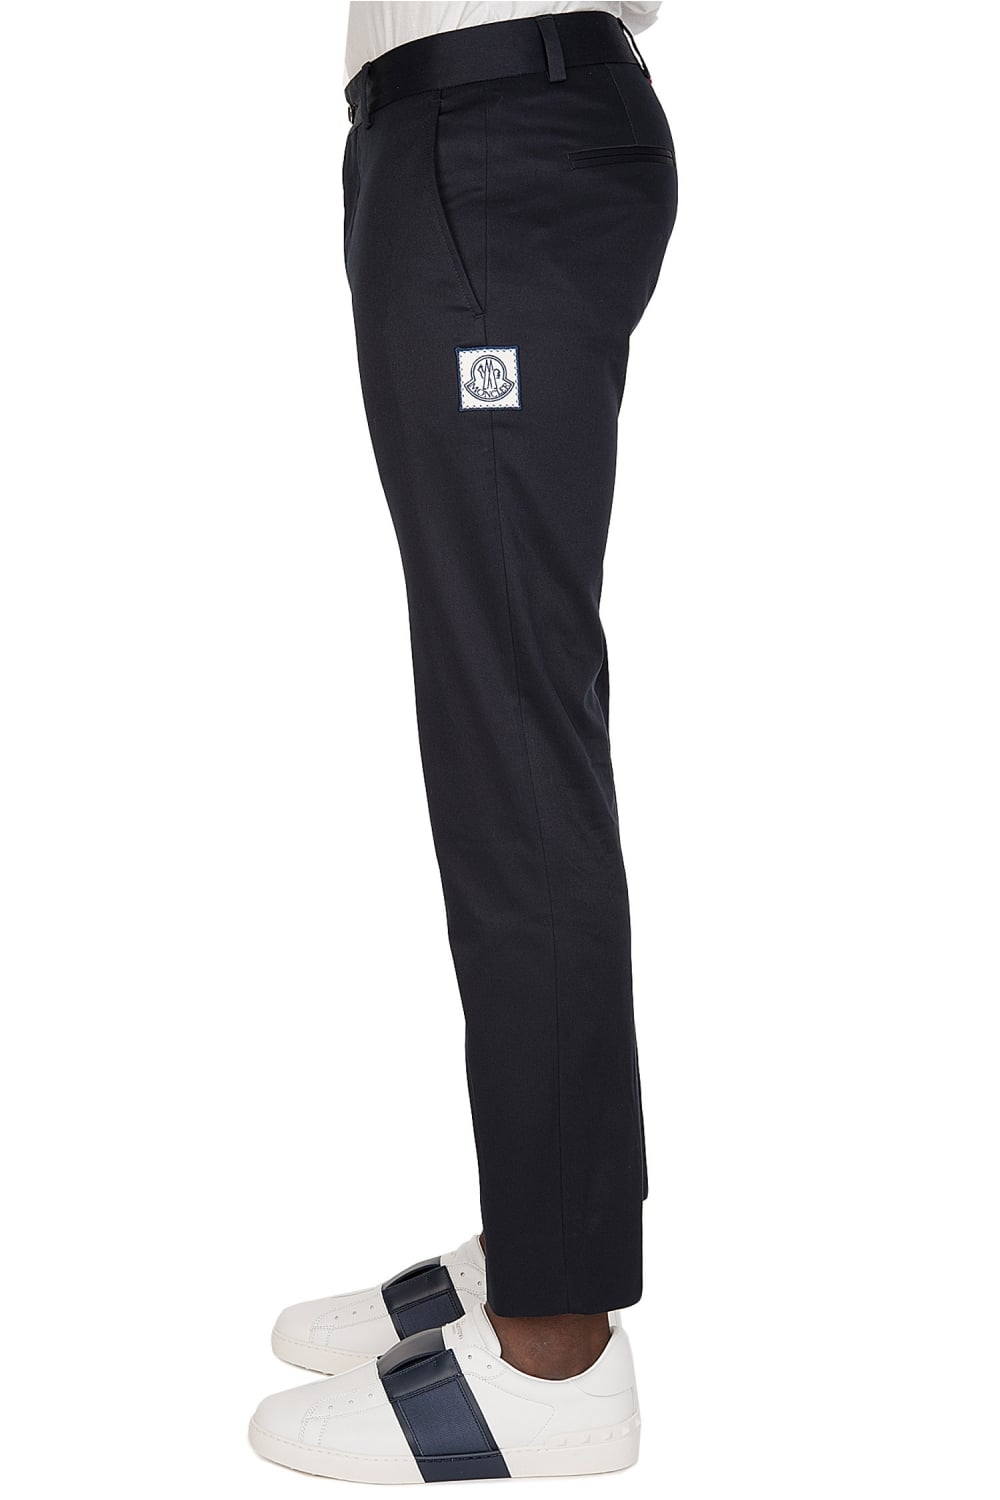 960f9673d Moncler Gamme Bleu Tapered Trousers Navy